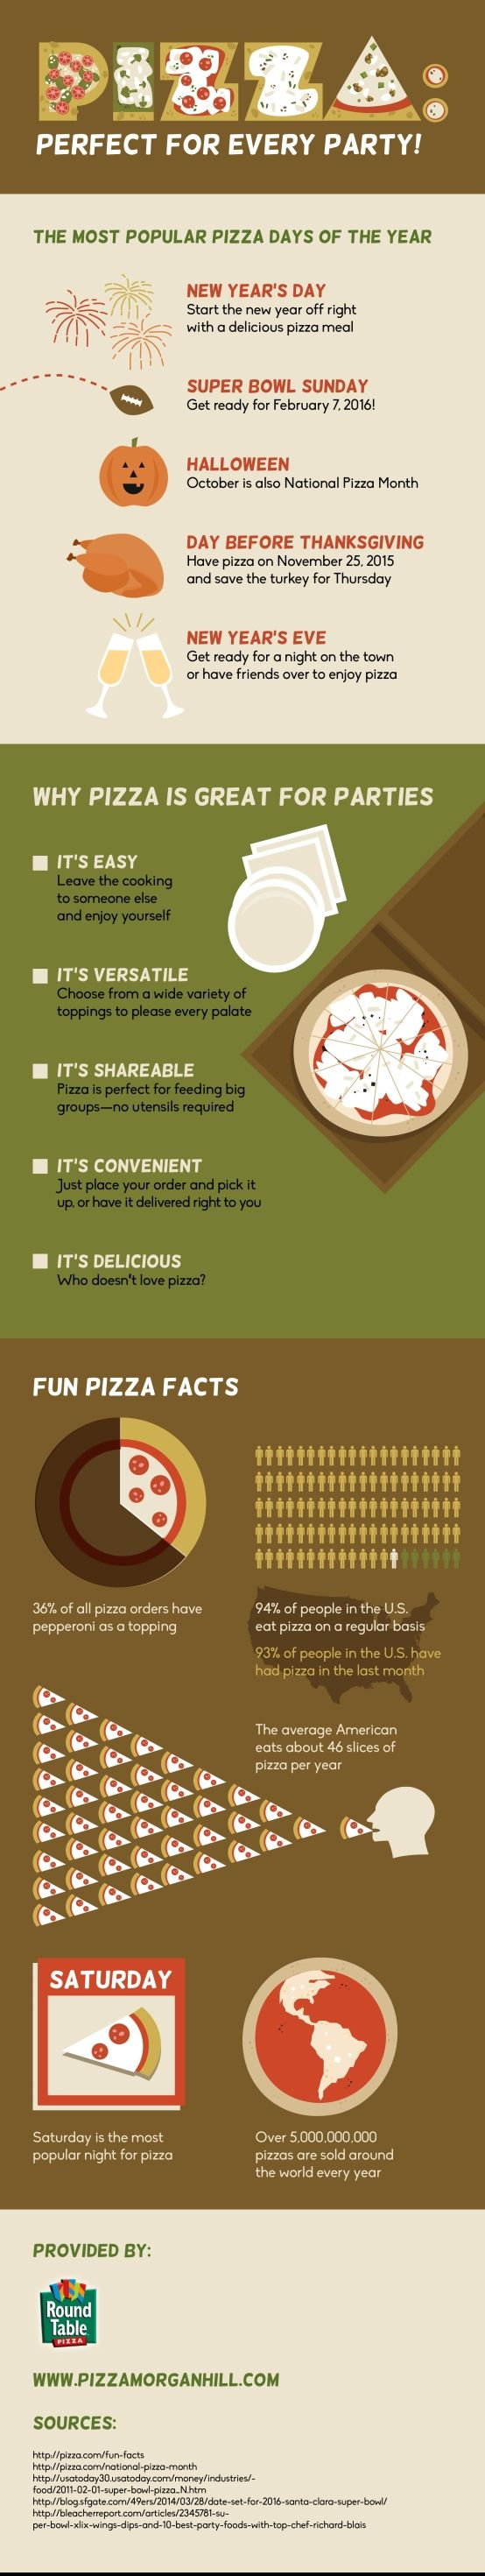 47 best Food - Pizza images on Pinterest | Pizzas, Barbecue and ...